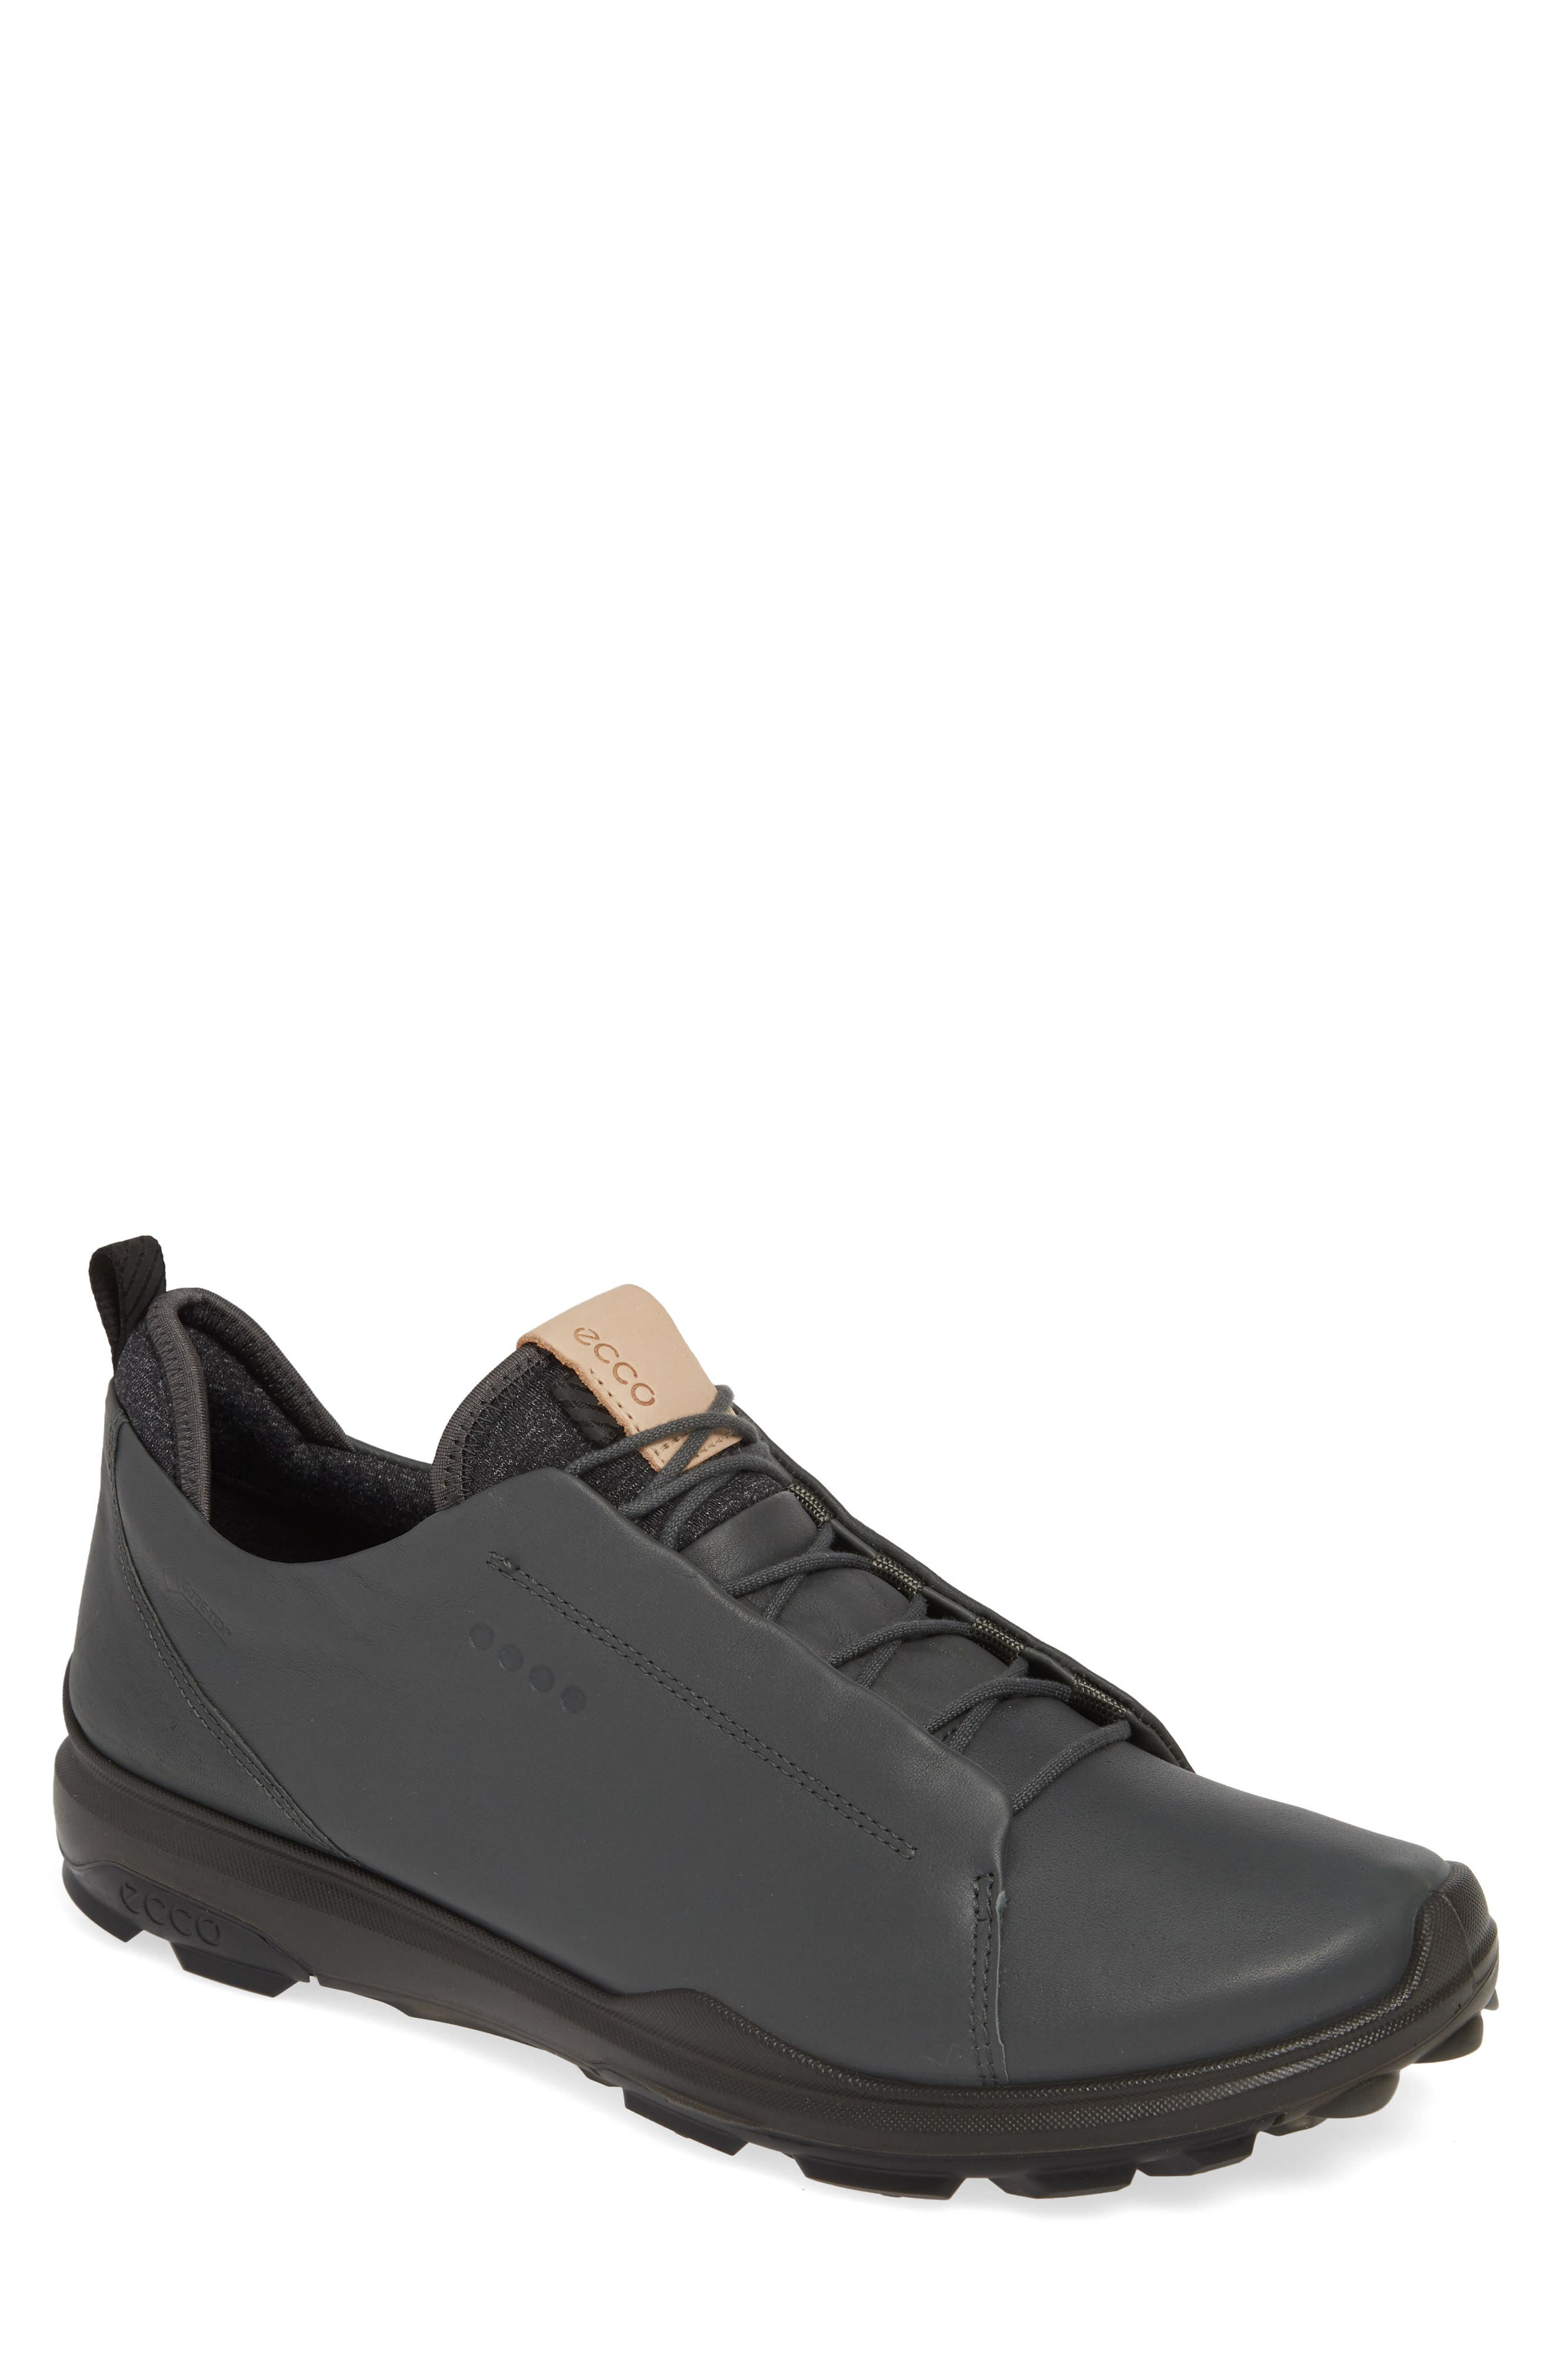 ECCO BIOM<sup>®</sup> Hybrid 3 OL Gore-Tex<sup>®</sup> Golf Shoe, Main, color, DARK SHADOW LEATHER